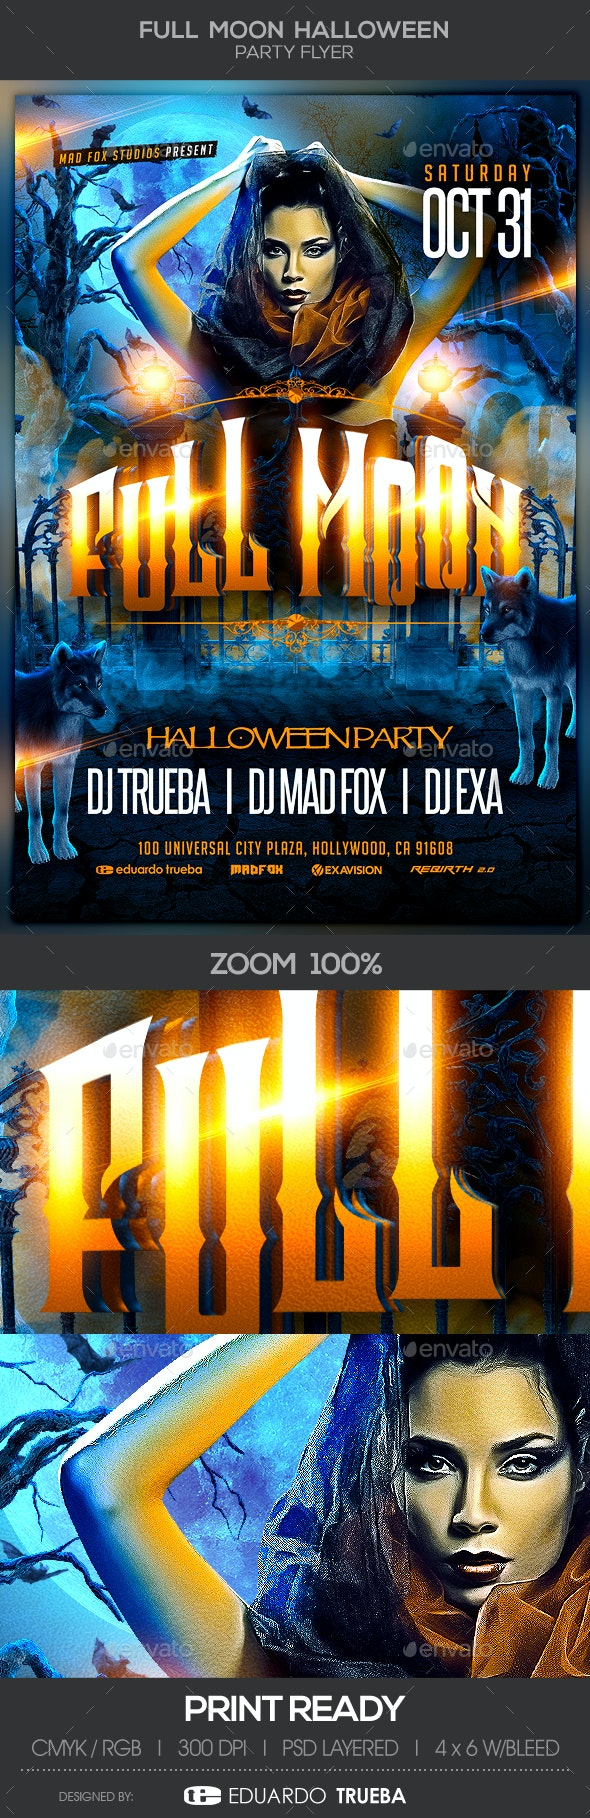 Full Moon Halloween Party Flyer - Clubs & Parties Events